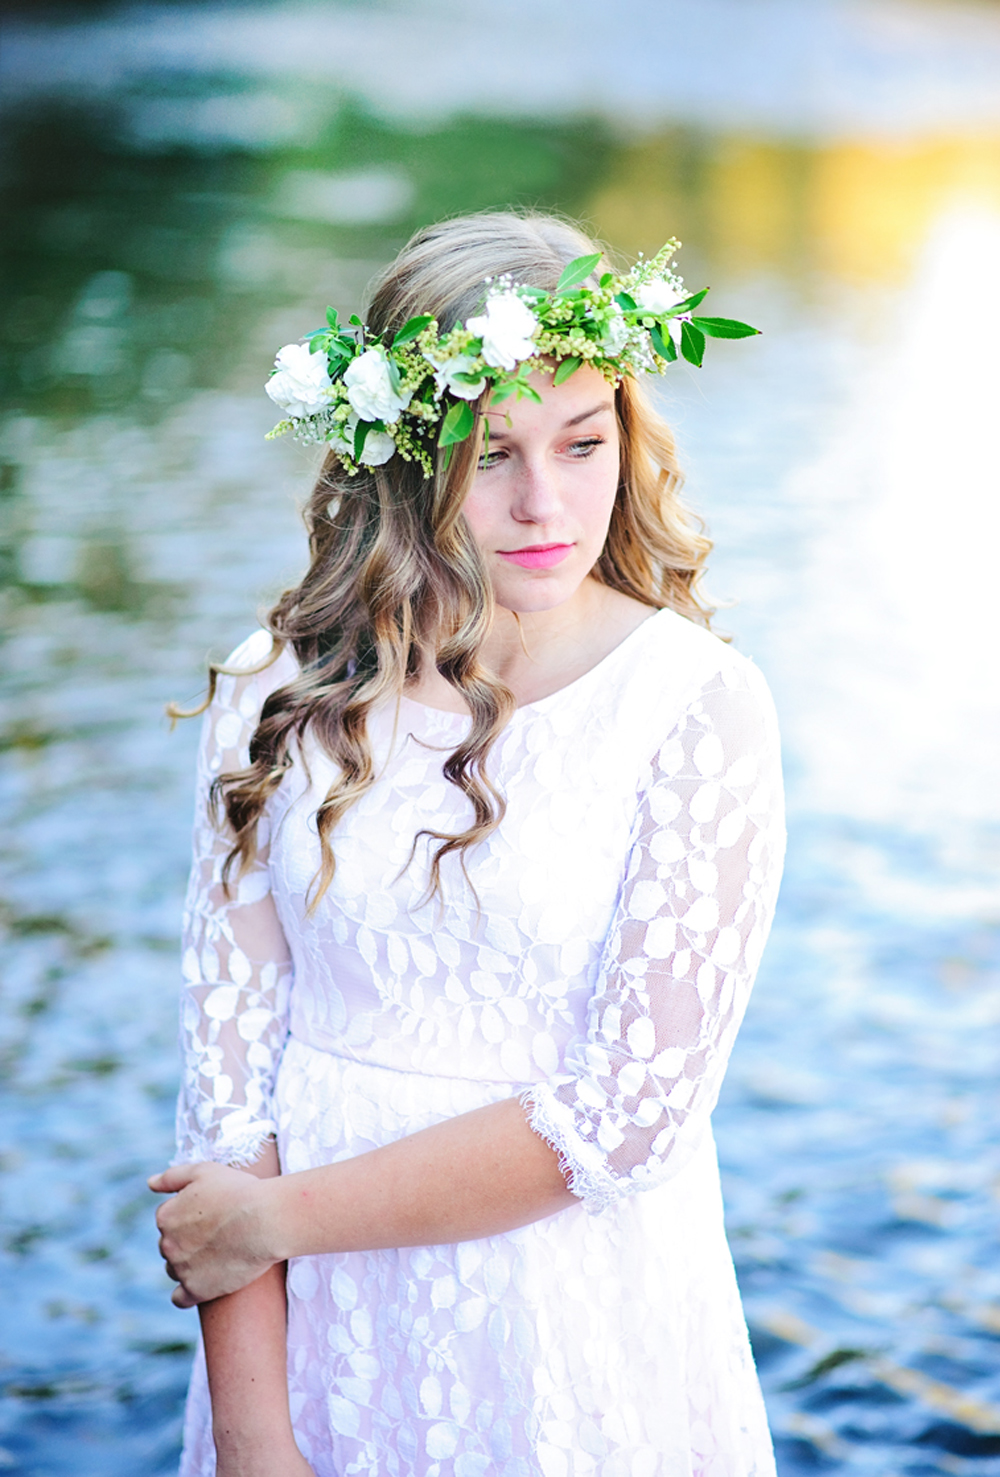 How to Make a Flower Crowns with Fresh Flowers